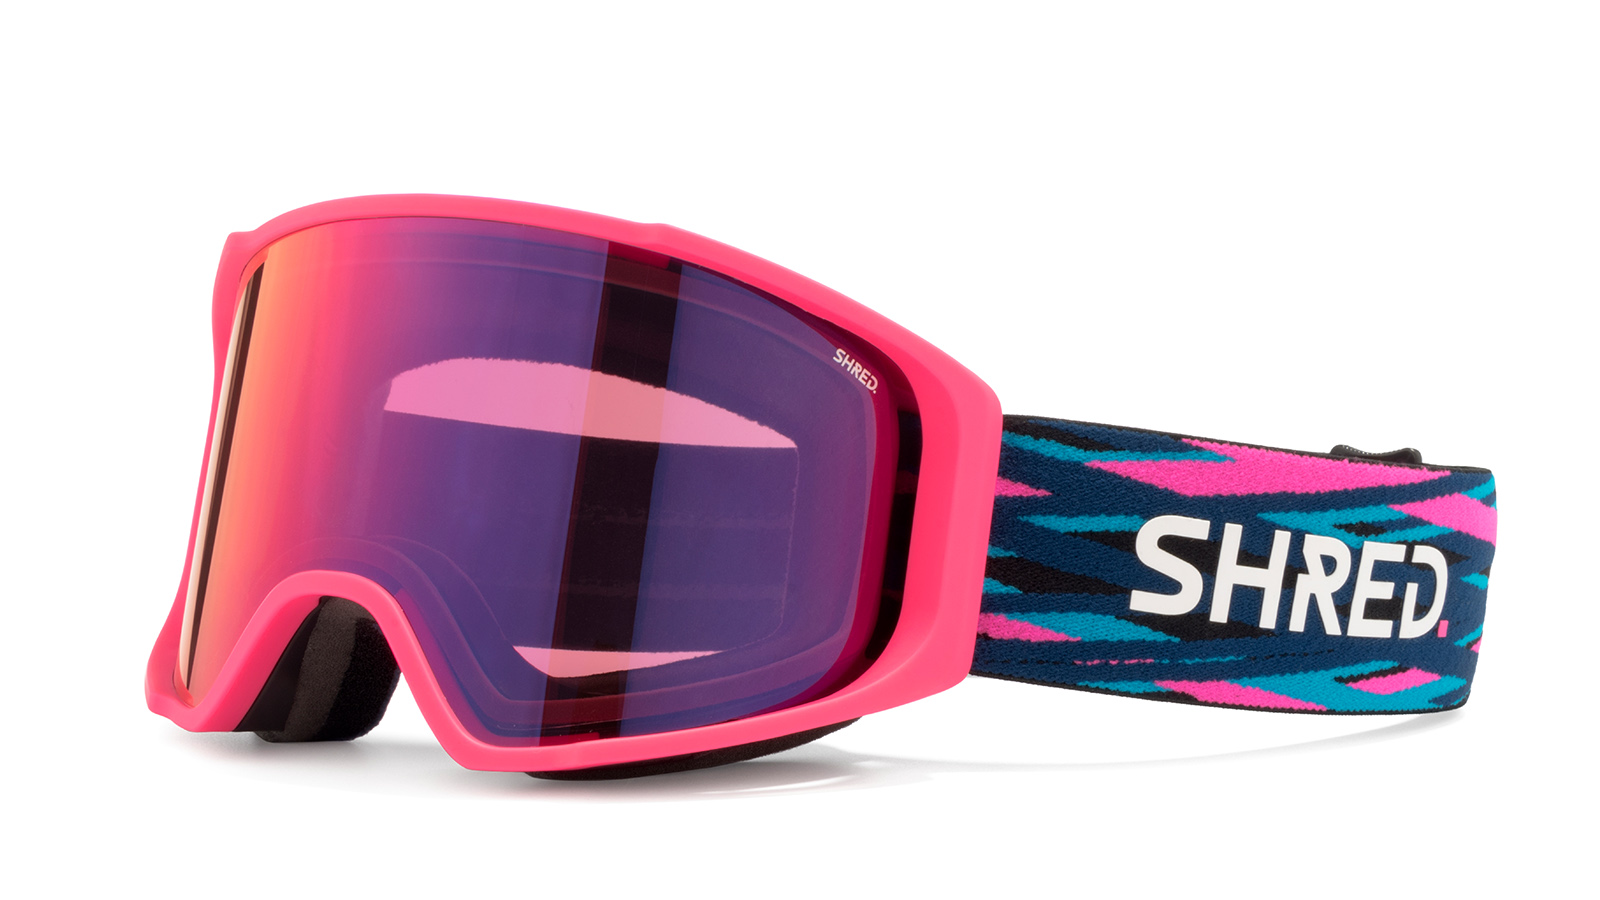 SHRED. FW20/21 Goggles